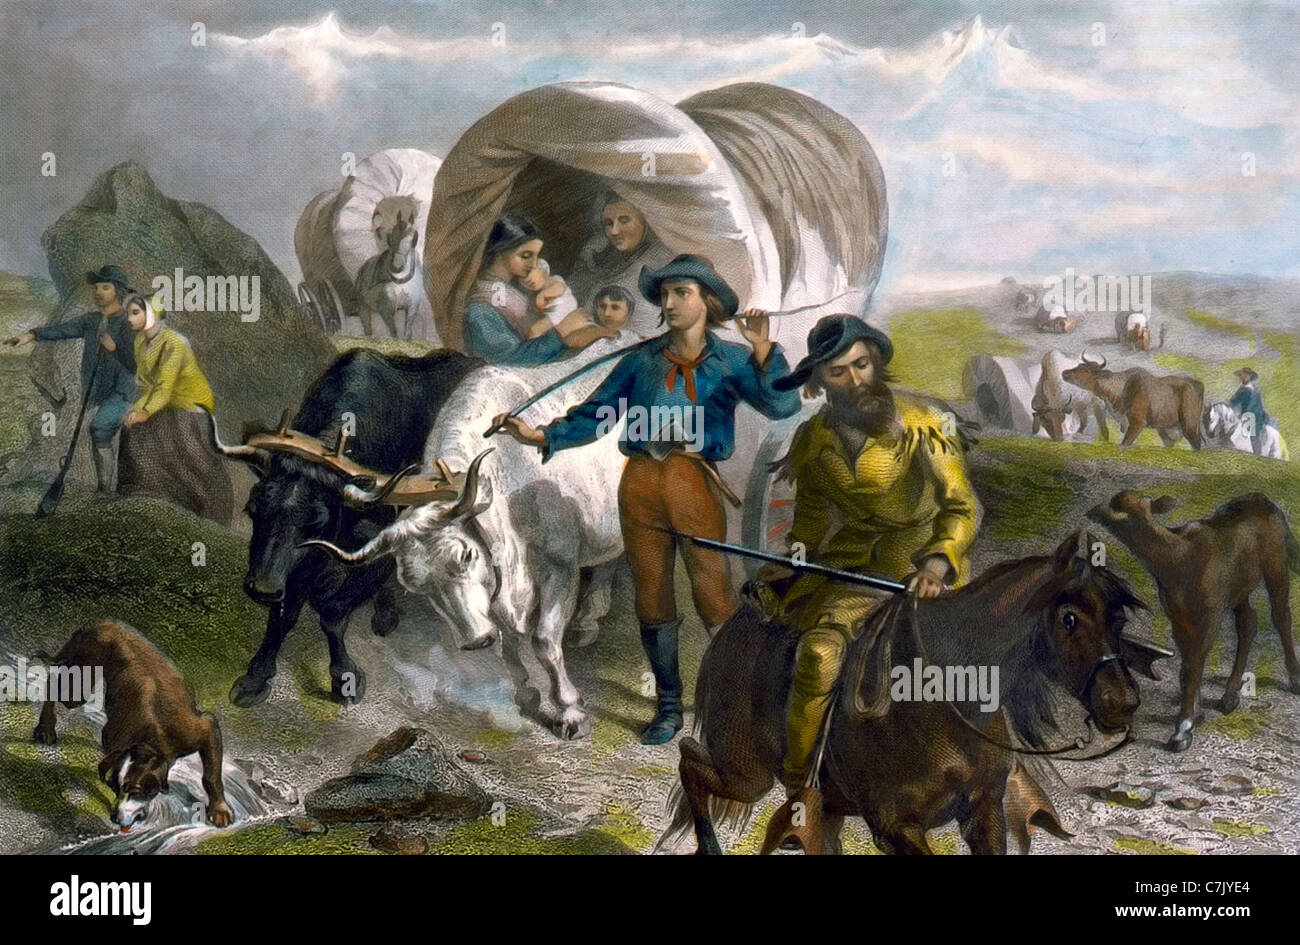 Emigrant party on the road to California - Wagon train of women, men, and children, moving through the mountains. - Stock Image